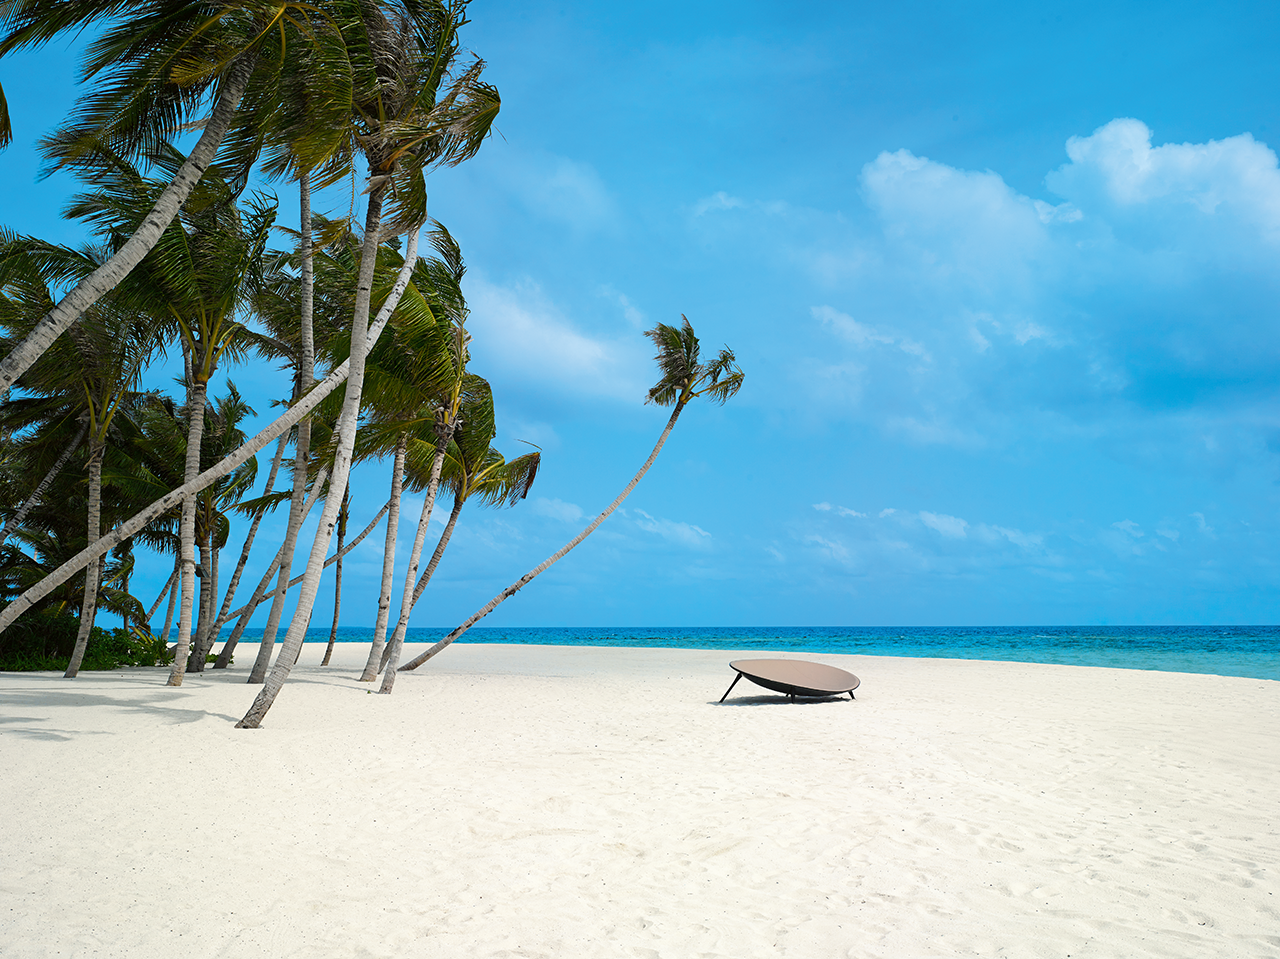 orb-like lounge in the distance on a beach with sand, palm trees, and blue sky